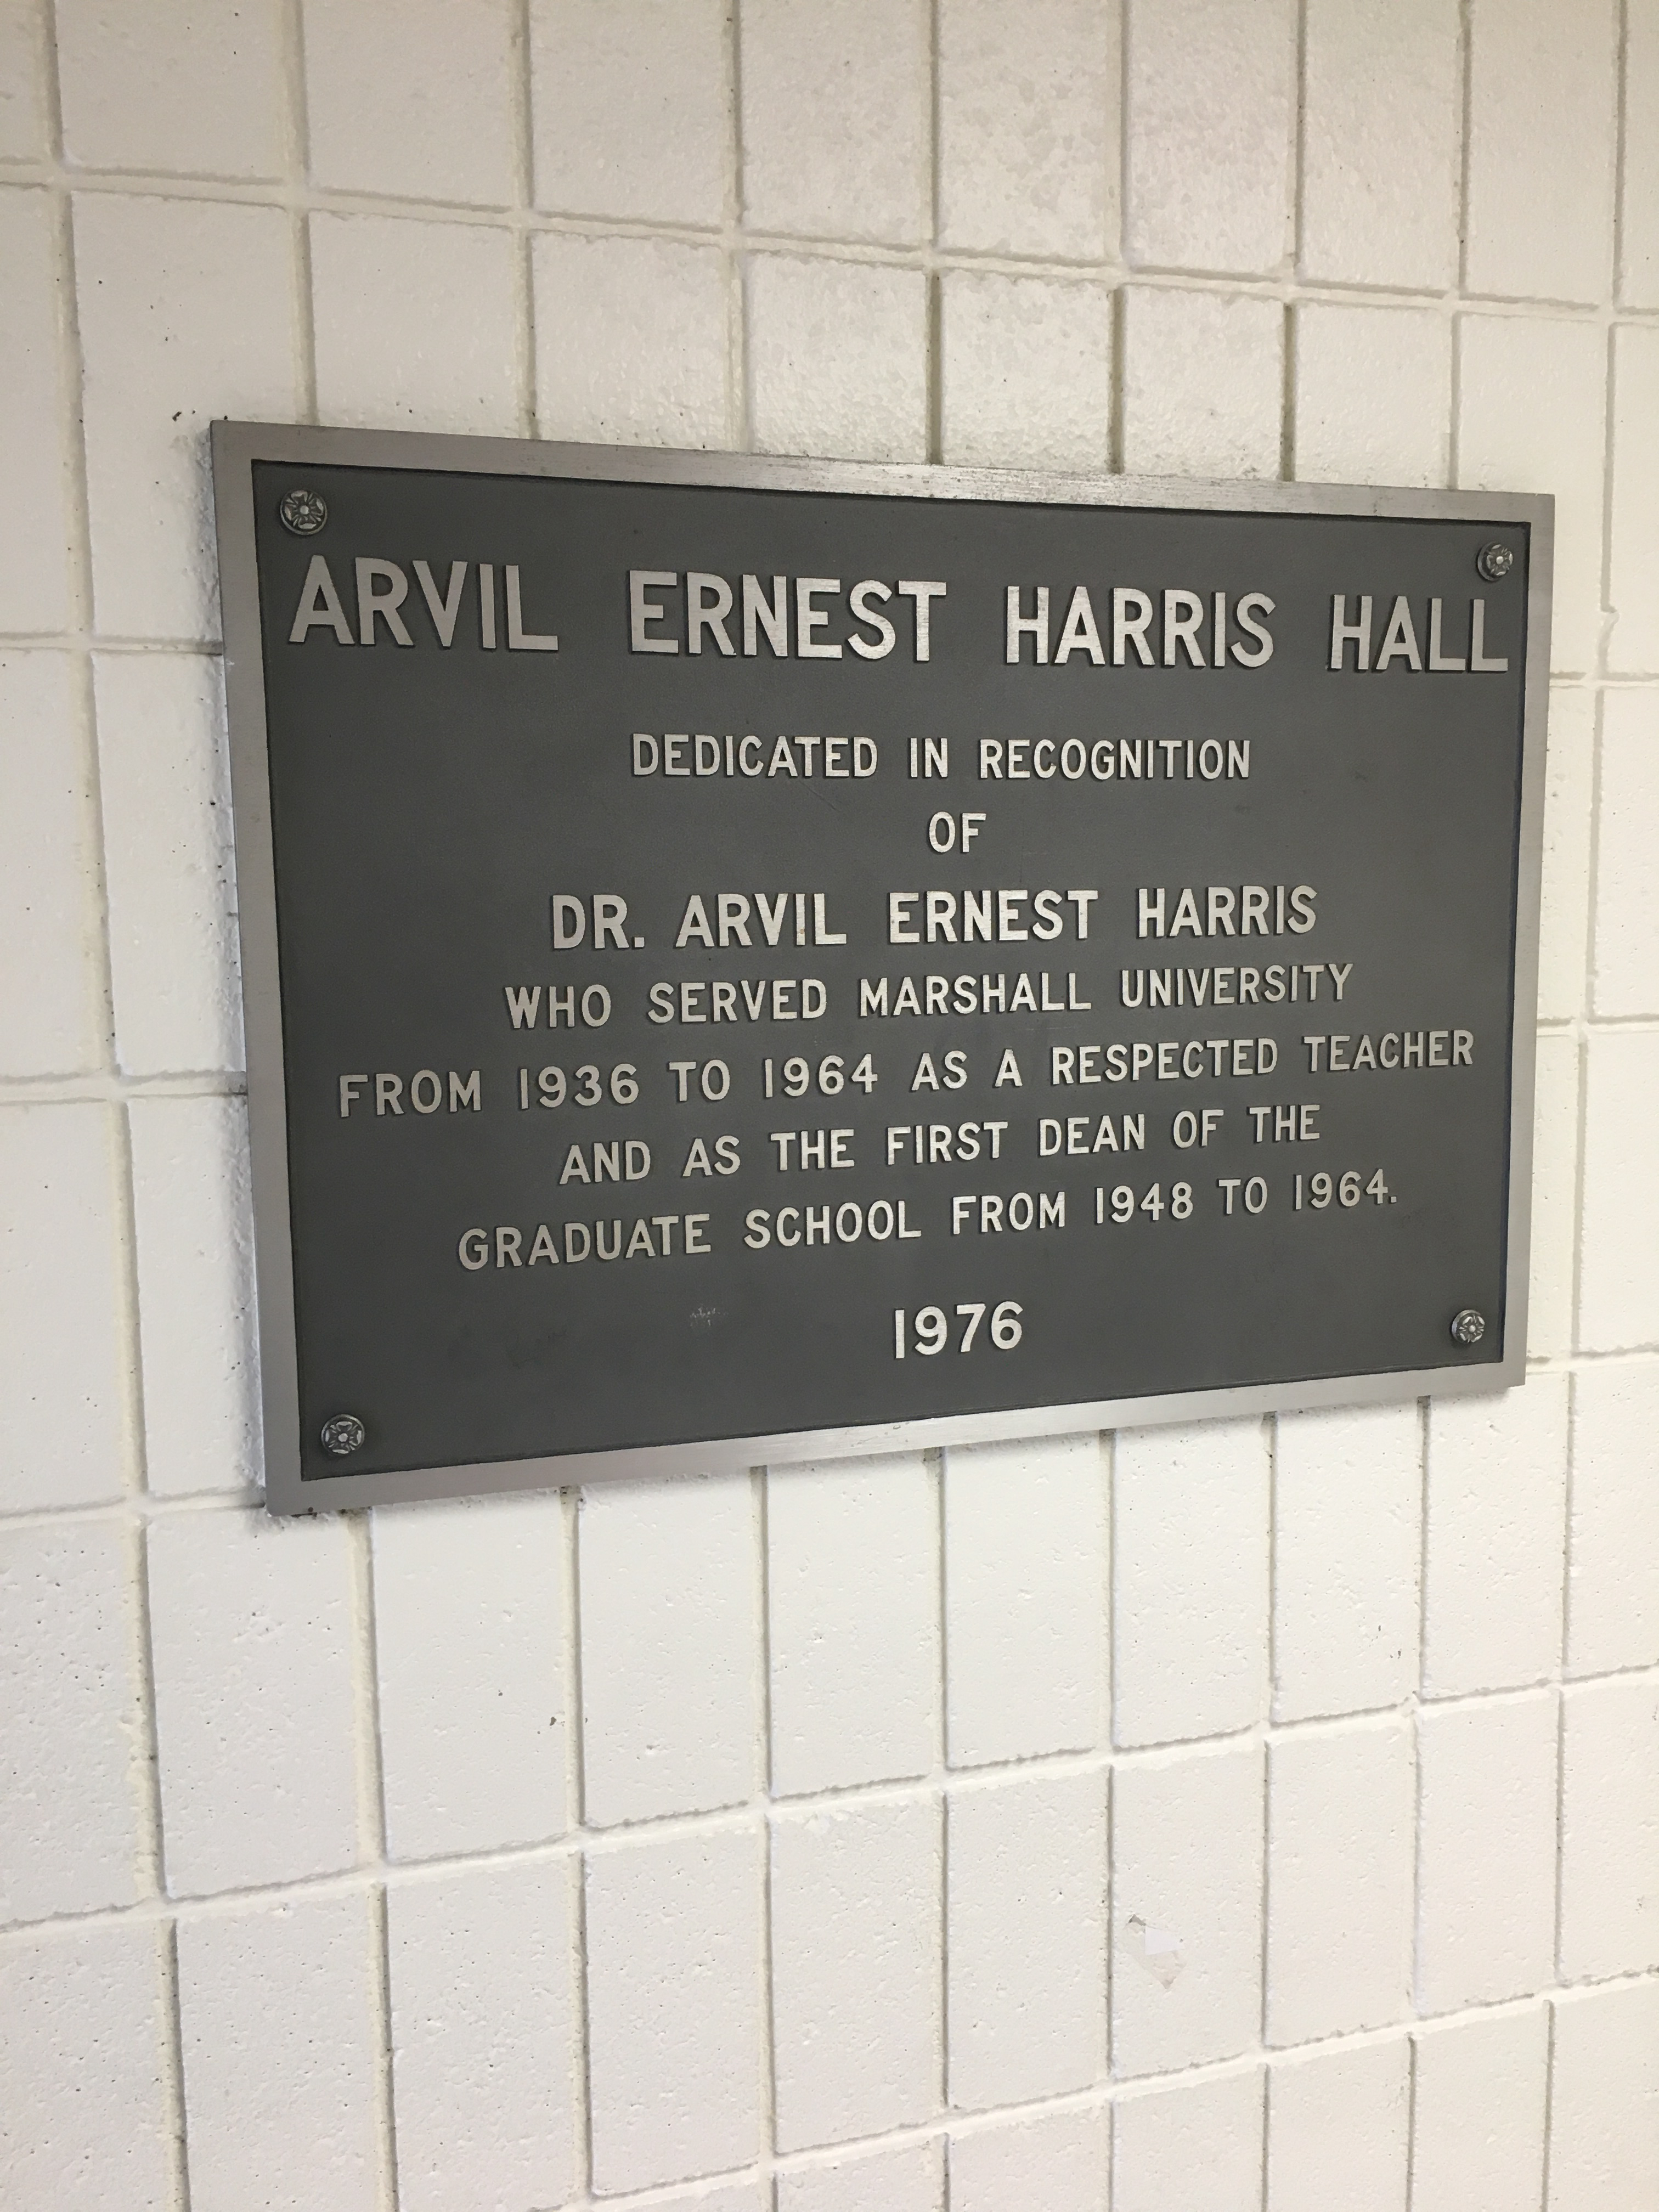 The building was formally named Harris Hall in a ceremony on November 5, 1976.